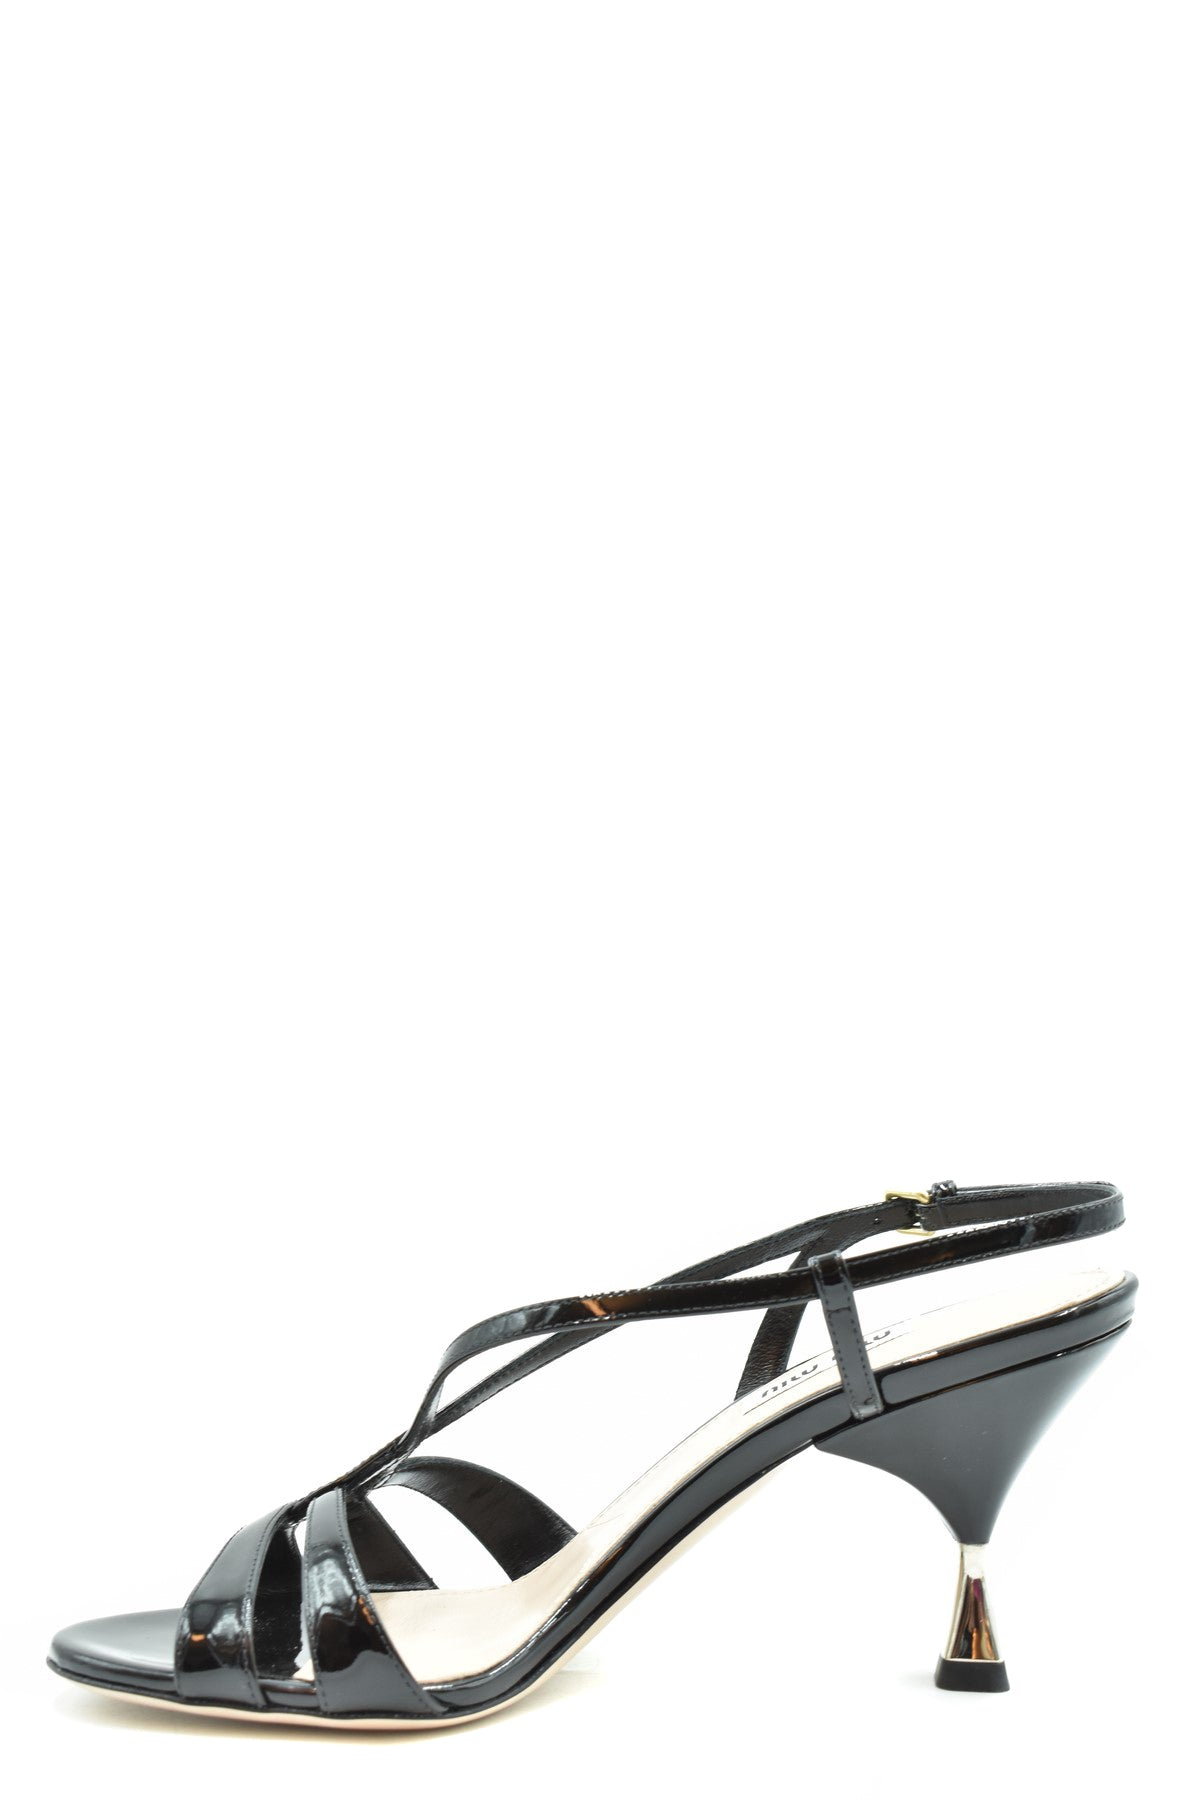 Shoes Miu Miu-Women's Fashion - Women's Shoes - Women's Sandals-Product Details Terms: New With LabelMain Color: BlackType Of Accessory: ShoesSeason: Spring / SummerMade In: ItalyGender: WomanHeel'S Height: 8 CmSize: EuComposition: Dye 100%Year: 2020Manufacturer Part Number: 5X154D 3Asn-Keyomi-Sook